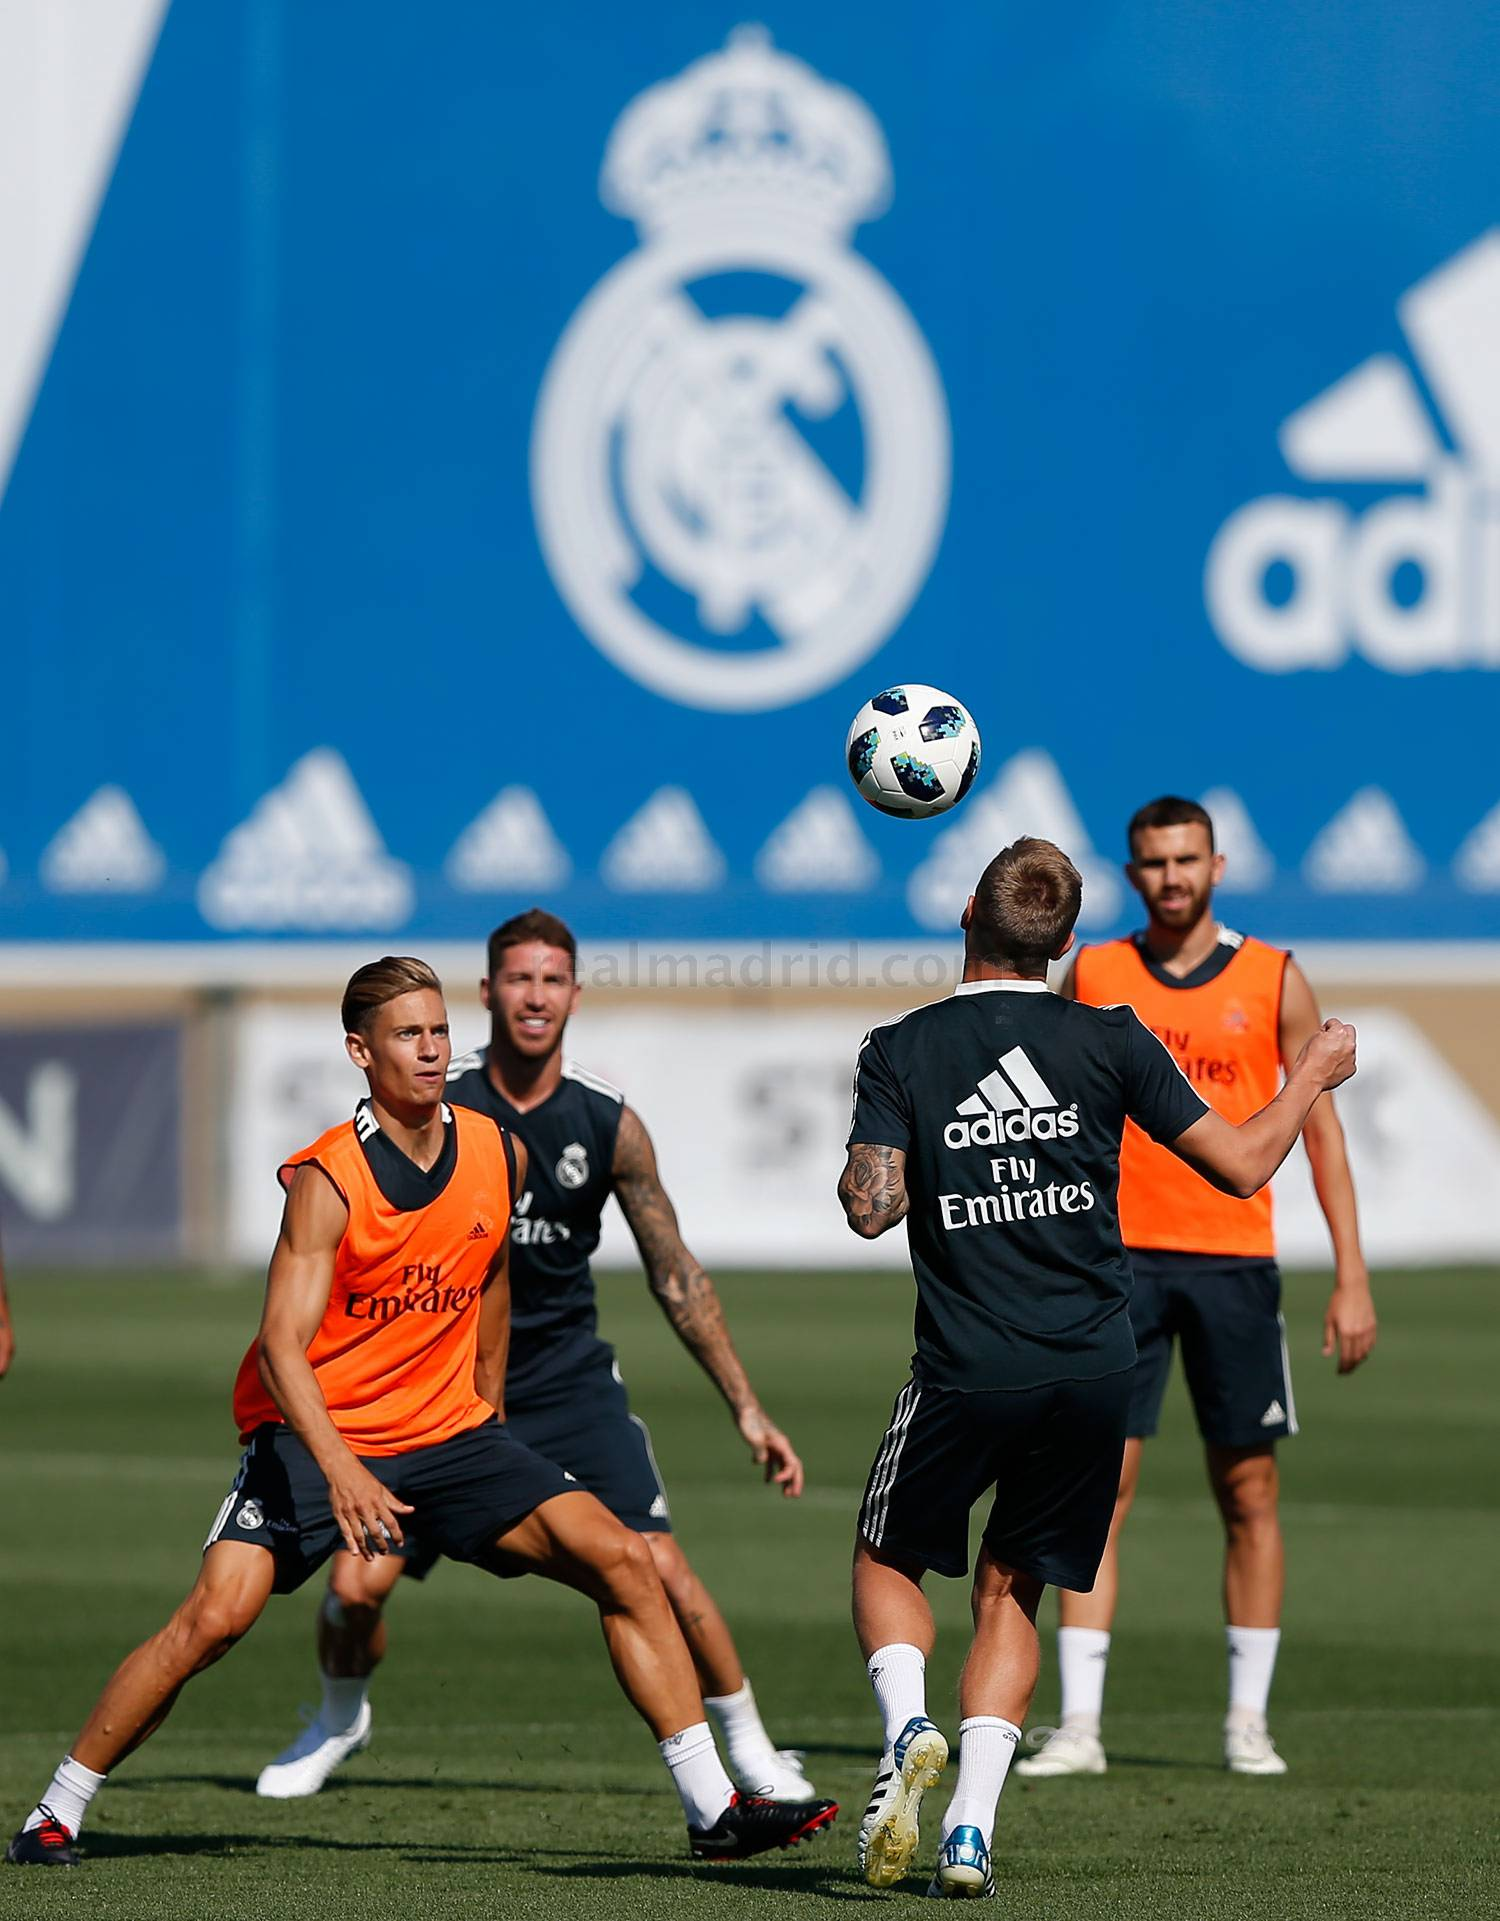 Real Madrid - Entrenamiento del Real Madrid - 13-08-2018